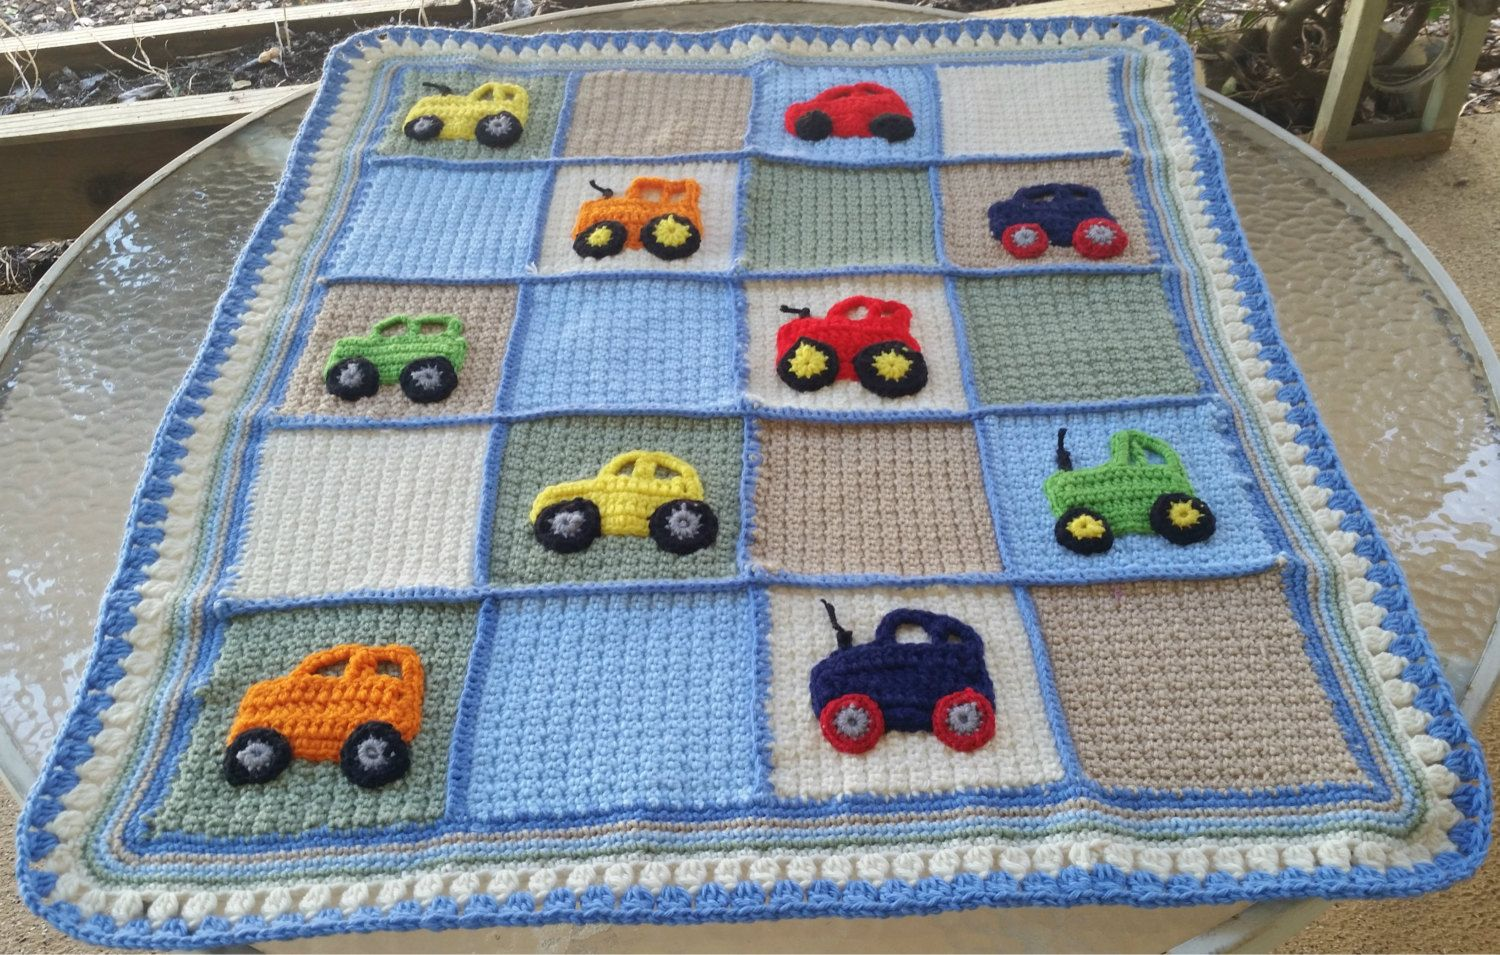 Crochet Baby Blanket Car Applique Blanket Tractor